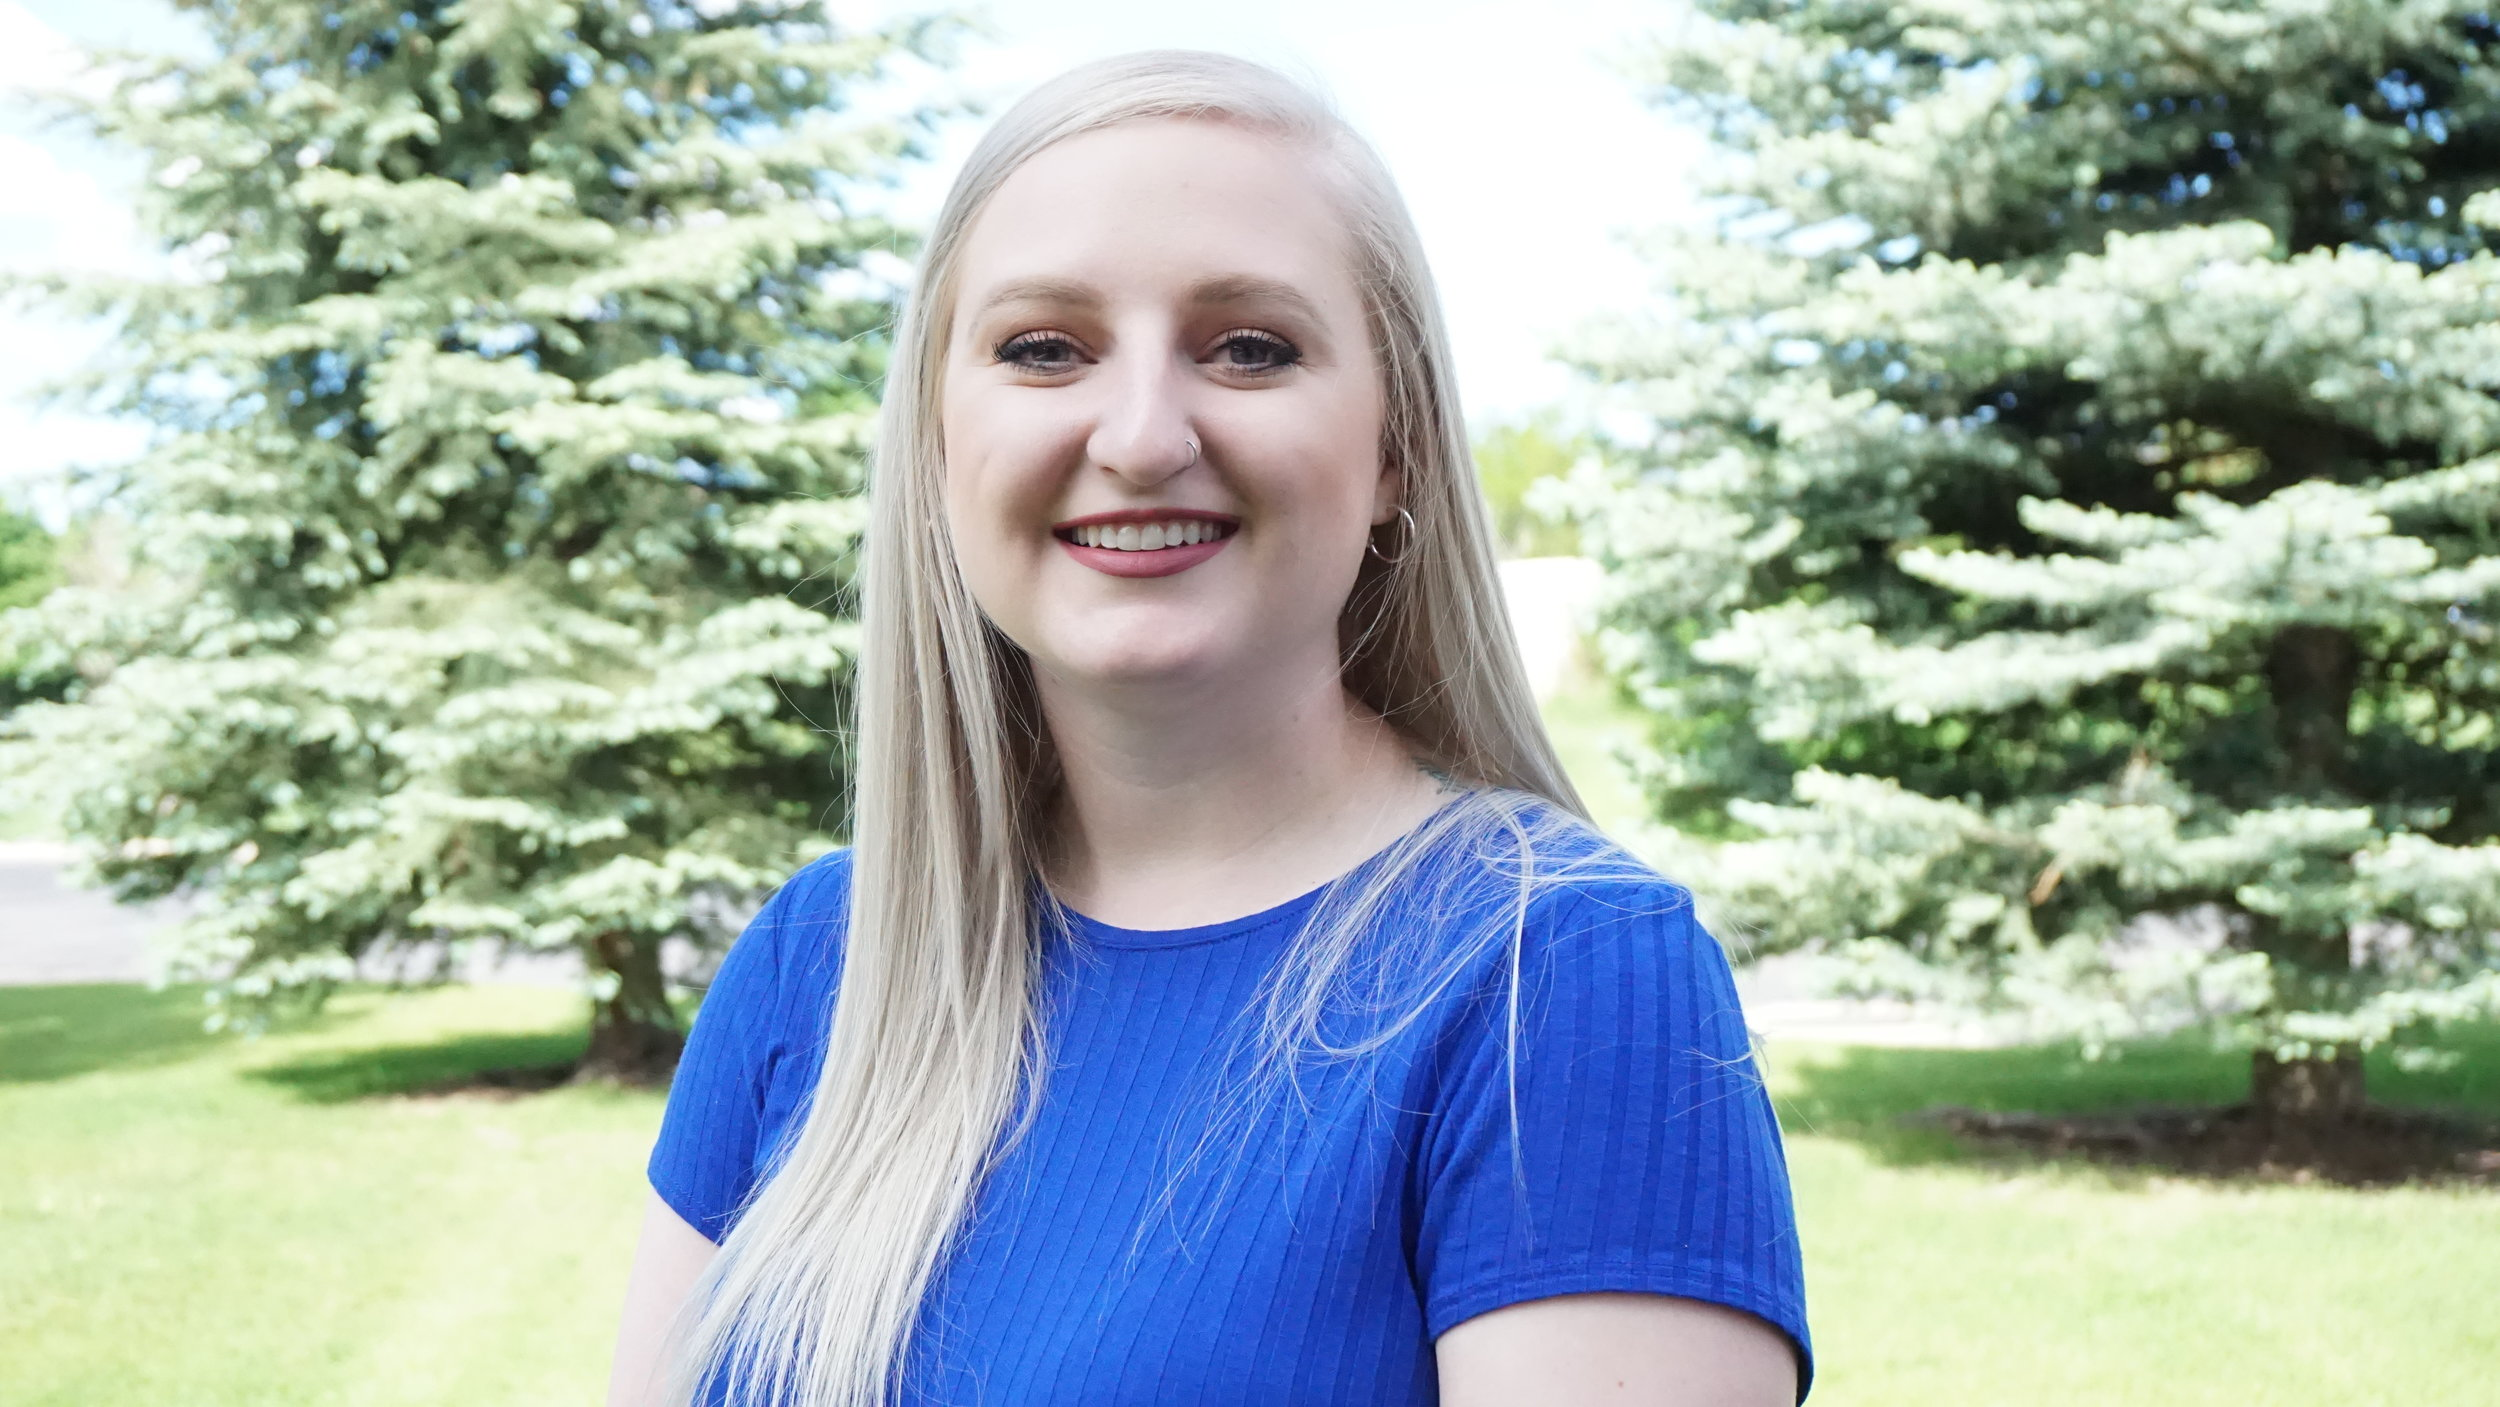 JULIE GIROUX   MARKETING ASSOCIATE  At Access Sensor Technologies Julie focuses on website design and social media. Coming from a background of coding and website design, she assists with making the customer user experience easy and frustration free when using our website. Once graduated she plans on pursing further schooling through a Physician's Assistant Program.   B.S.  Psychology from  Colorado State University  (graduating class of 2020)